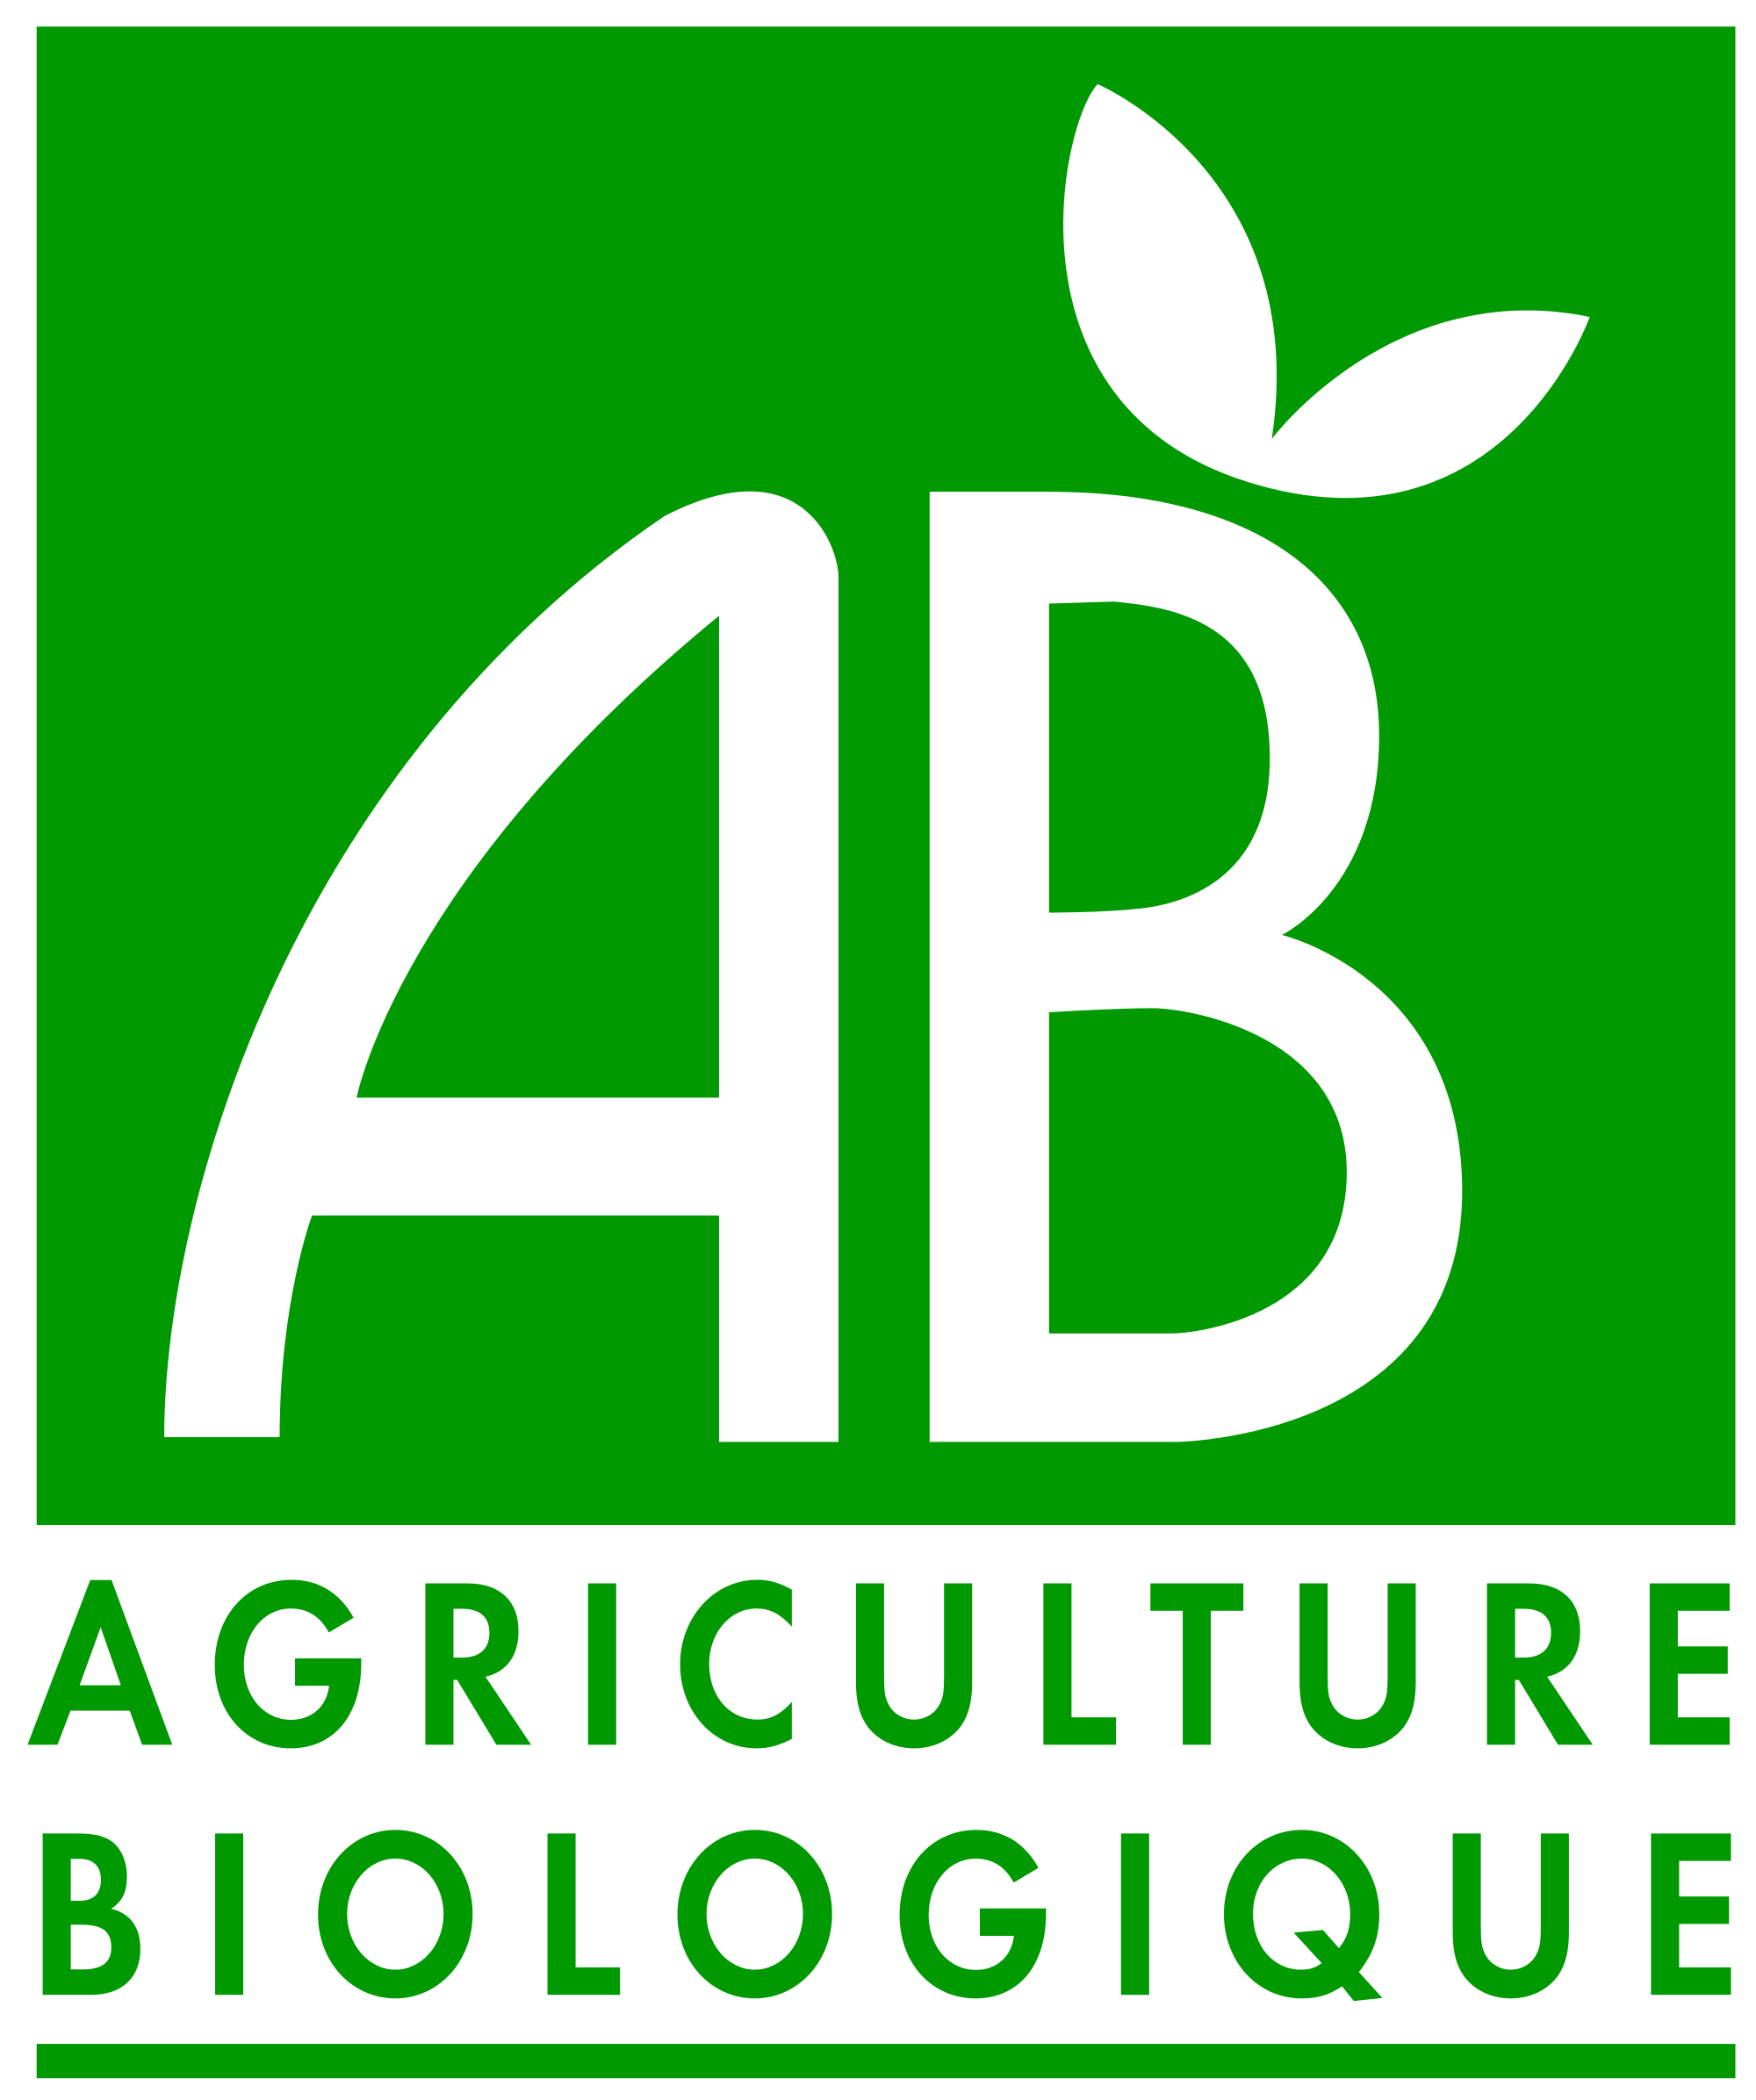 AB (Agriculture Biologique) – Organic Food Labels